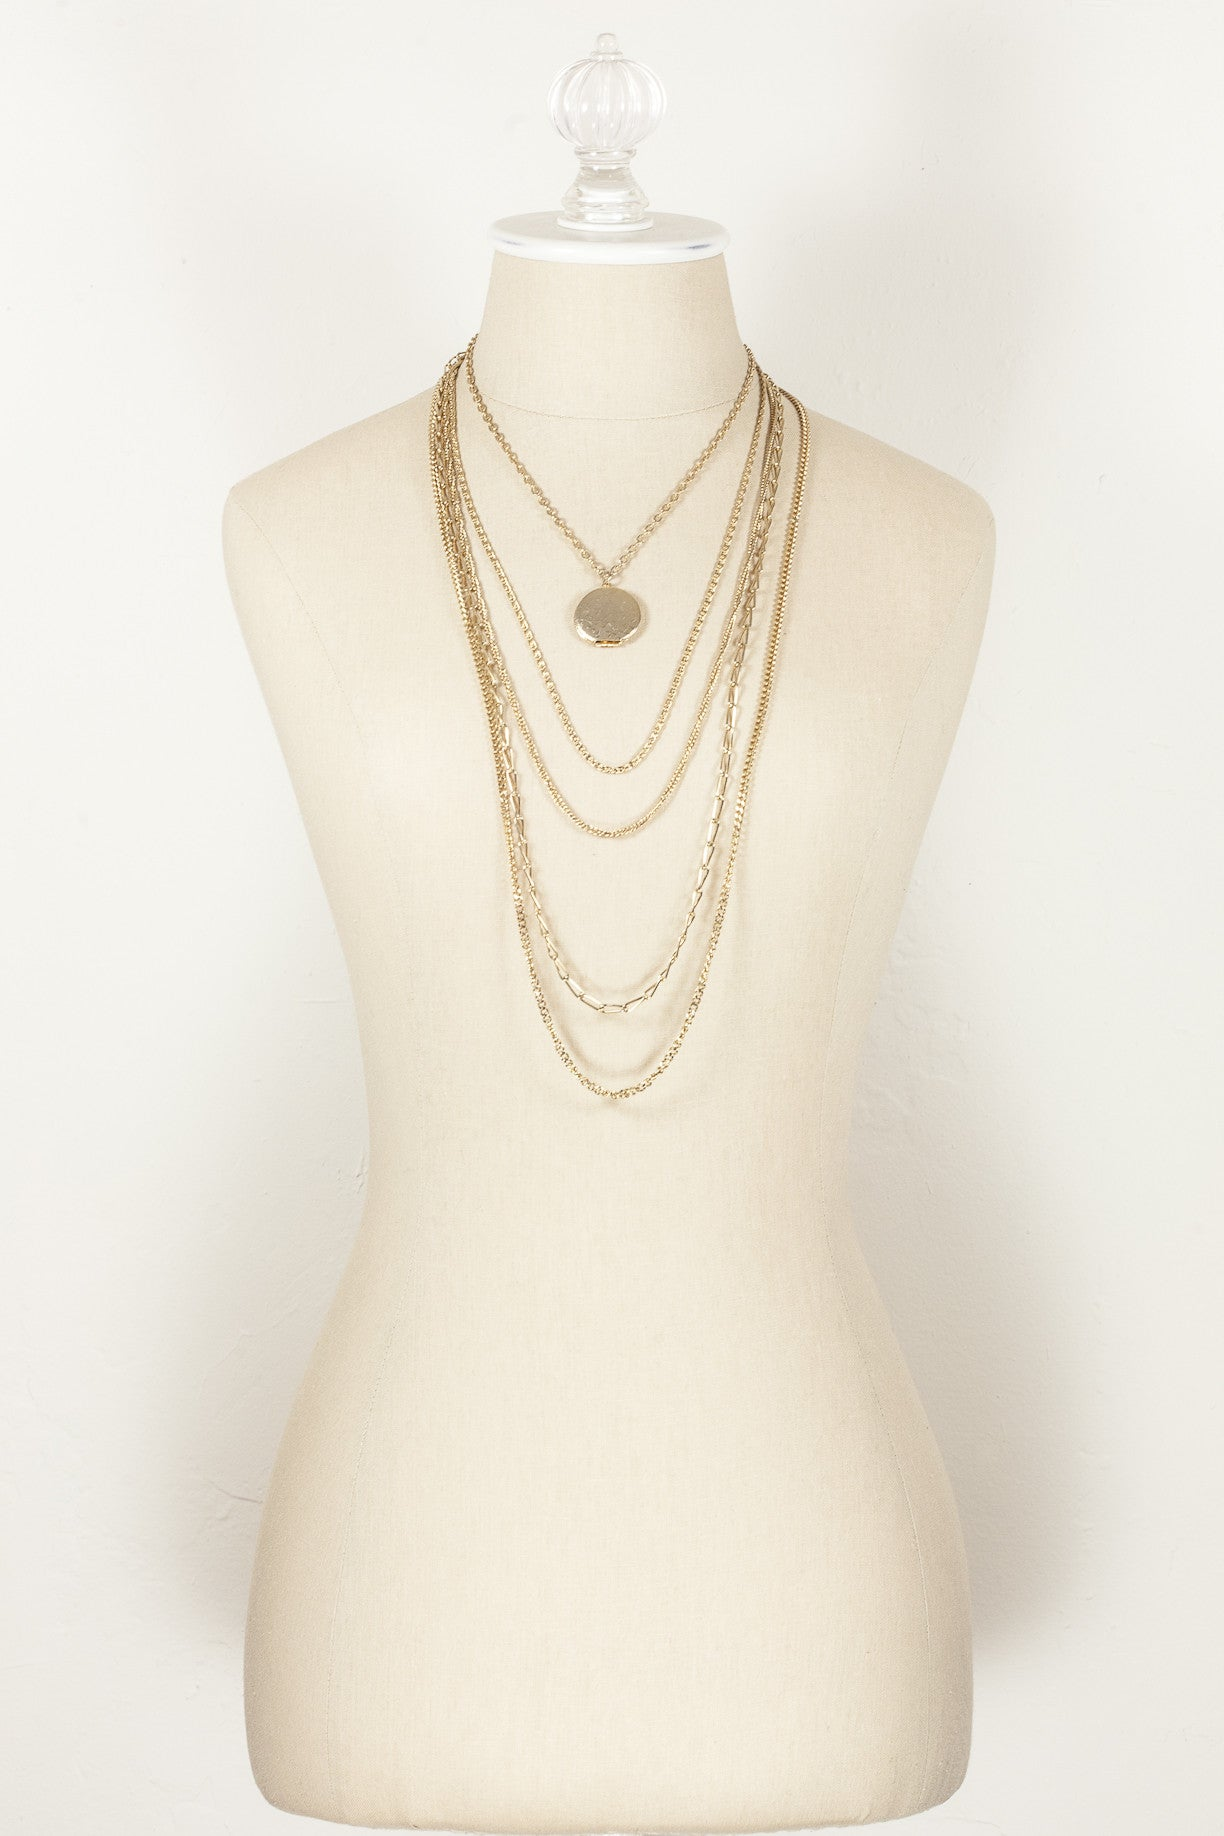 70's__Vintage__Multi Chain Locket Necklace